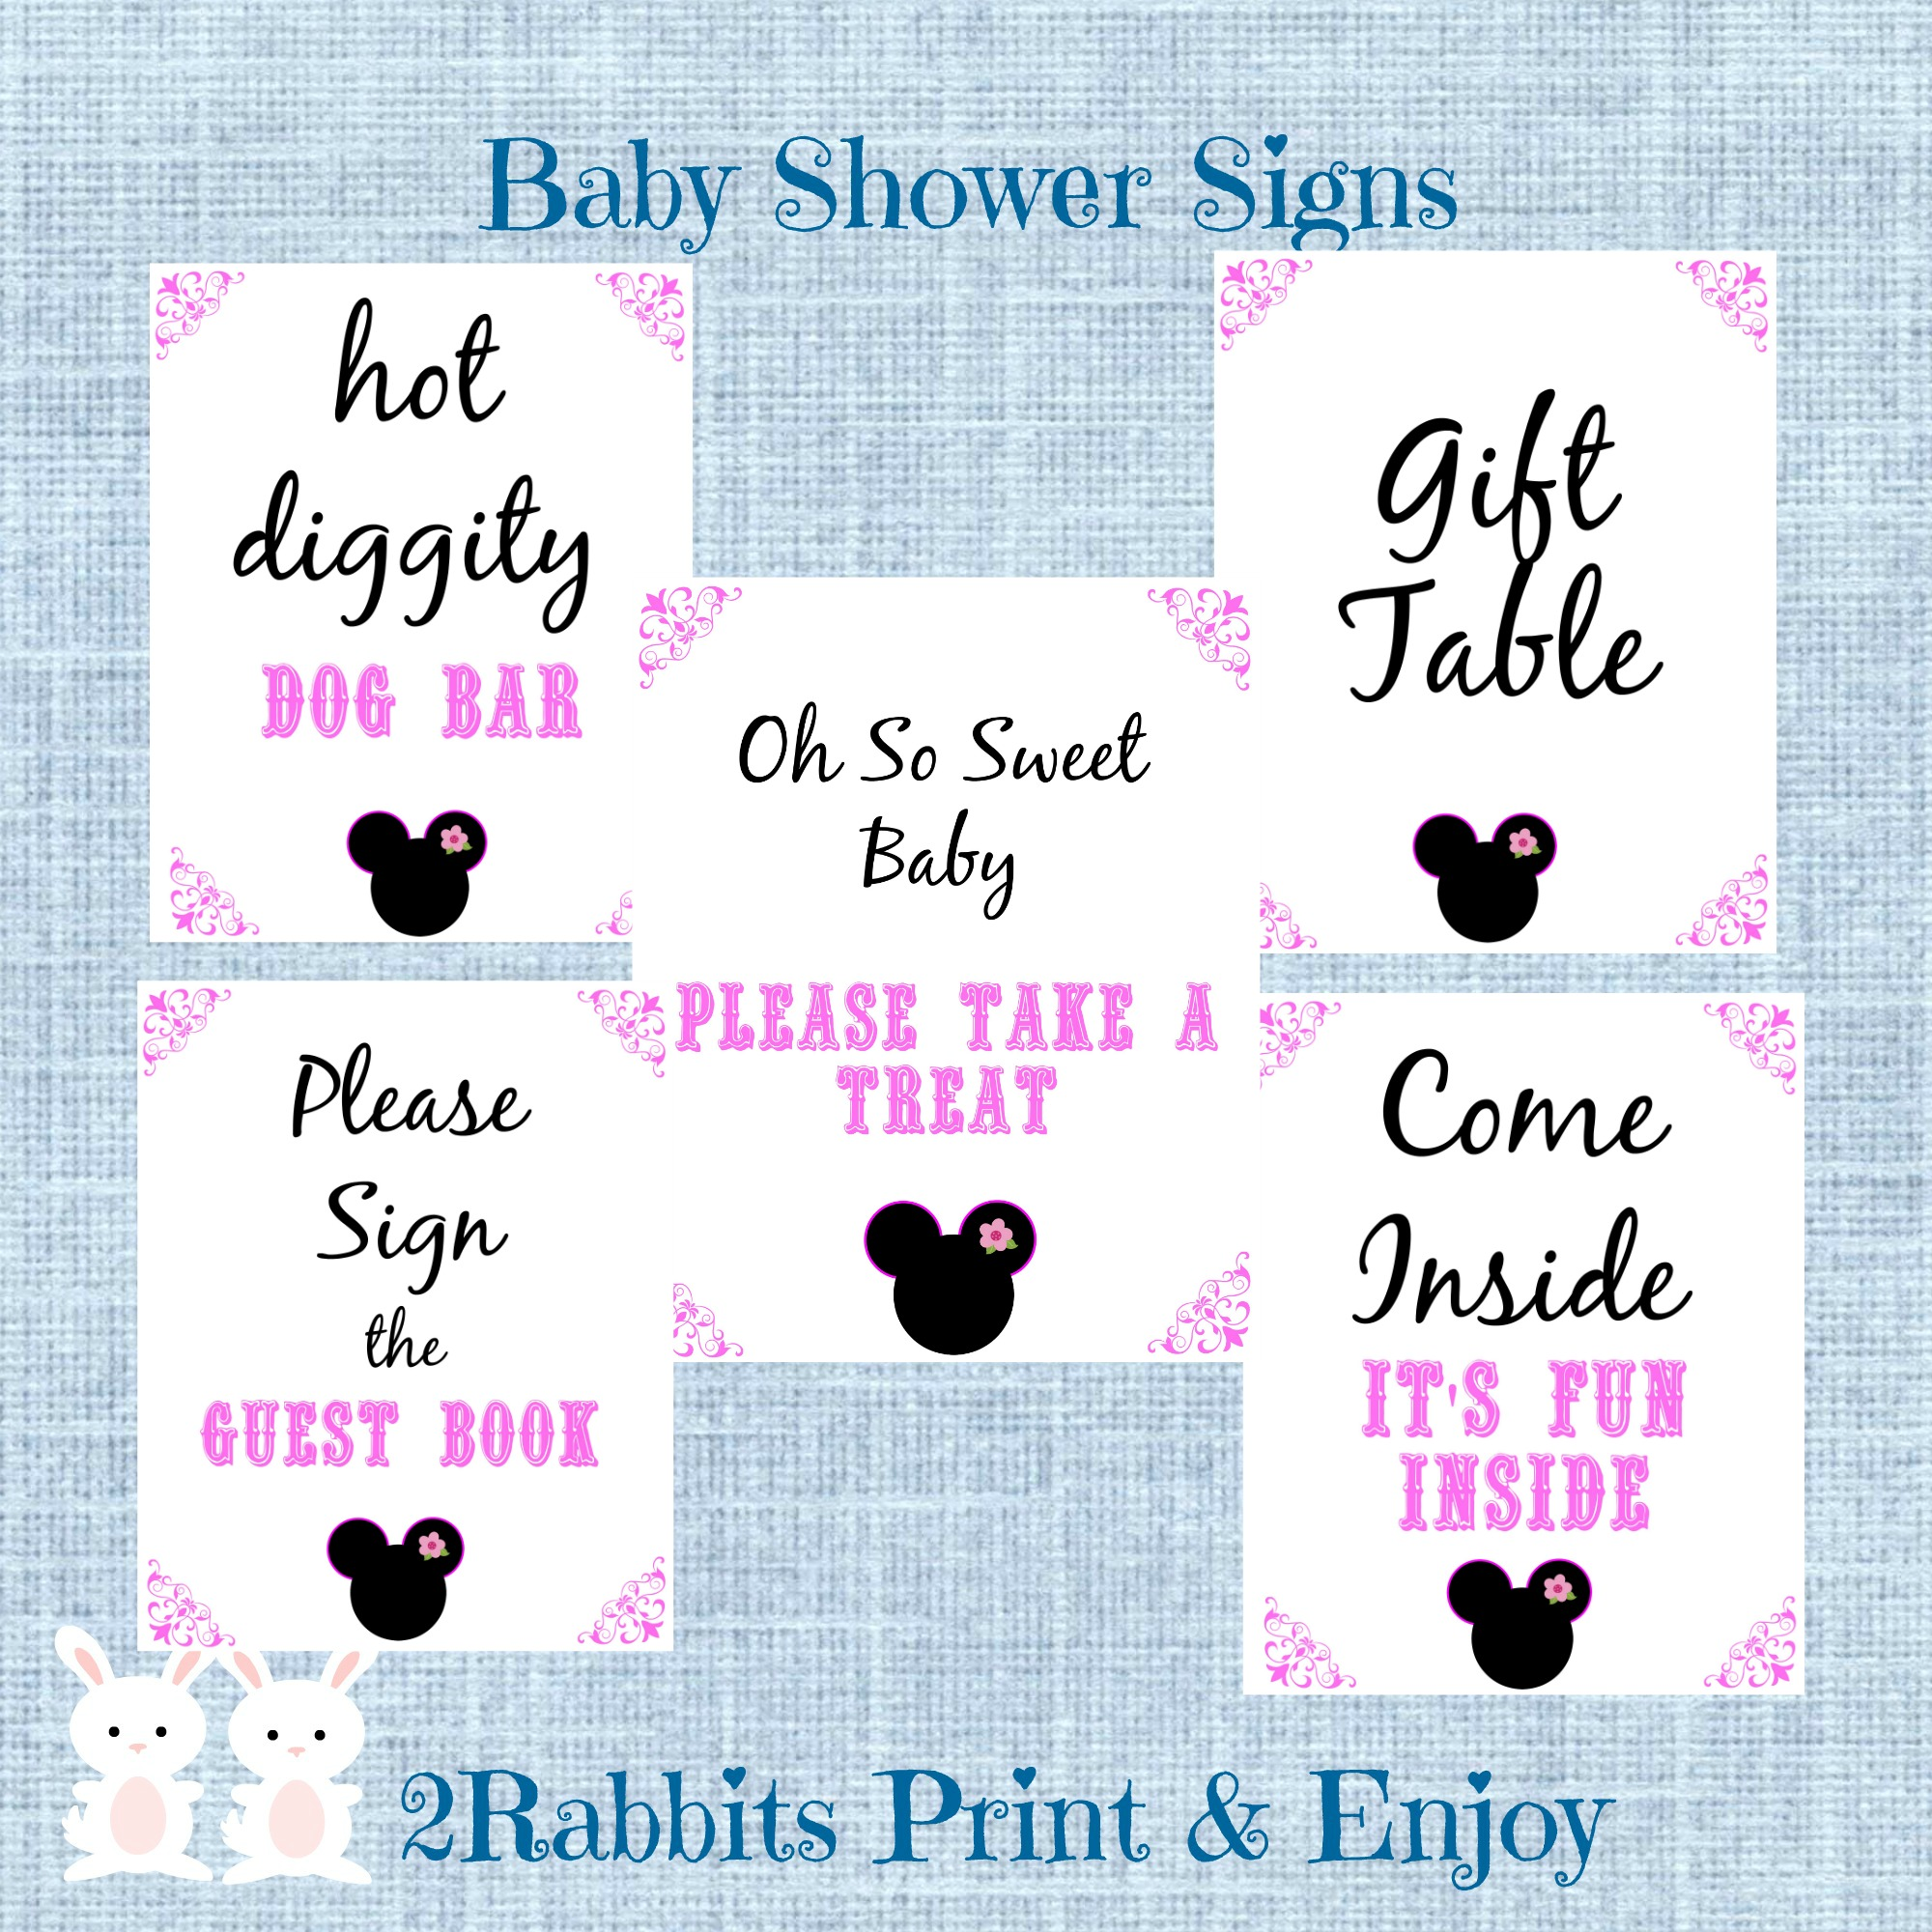 Full Size of Baby Shower:89+ Indulging Baby Shower Banner Picture Inspirations Baby Shower Announcements With Baby Shower Balloons Plus Baby Yager Together With Baby Shower Desserts As Well As Baby Shower Party Ideas